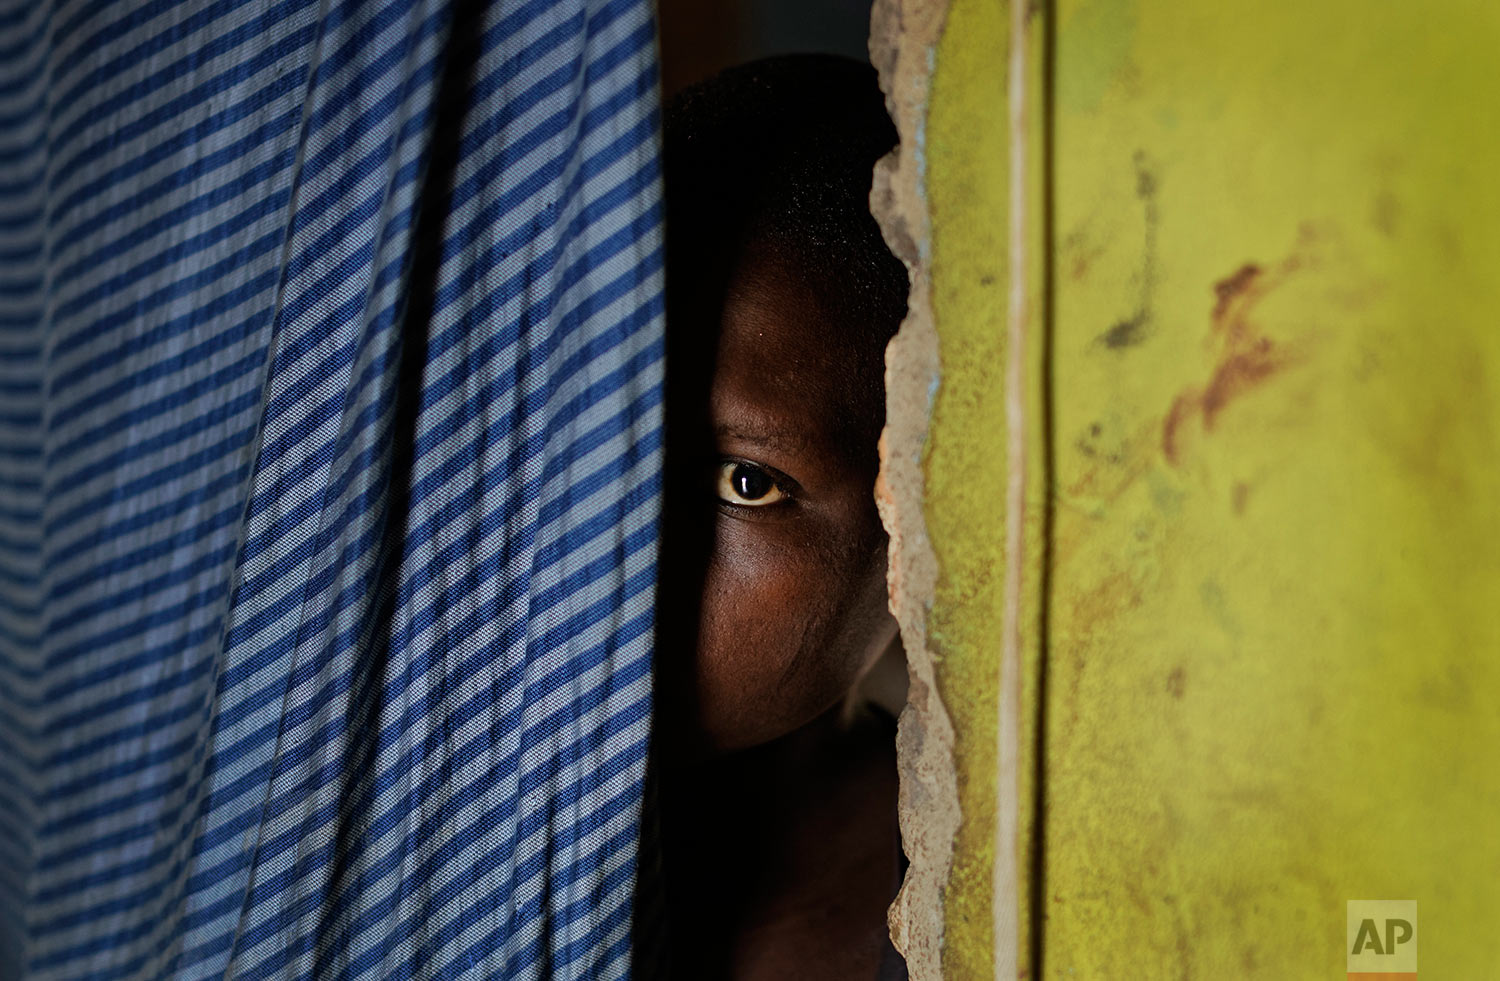 In this Thursday, June 1, 2017 photo, a 15-year-old who was raped when she was 14 talks to a member of UNICEF staff at her home in a village near Masaka, Uganda. The man who raped her was remanded to jail pending trial after an aid worker assisted her father in obtaining a birth certificate to prove she was under 18, a document she did not previously have. (AP Photo/Ben Curtis)